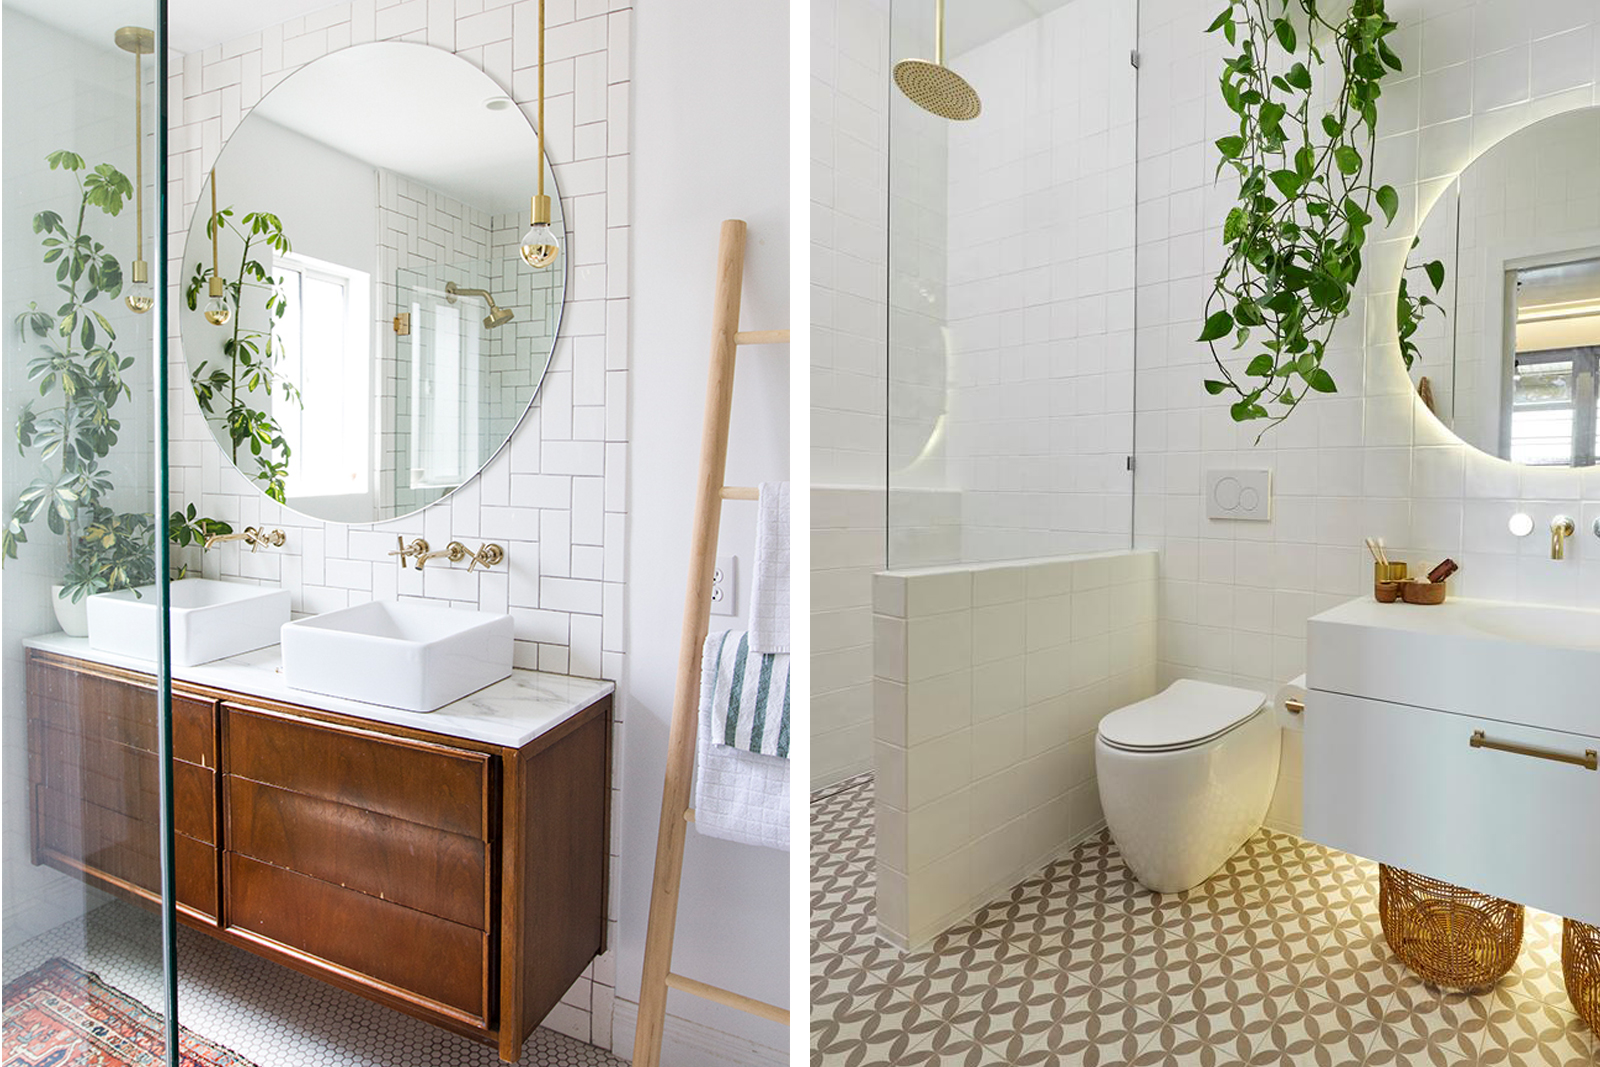 Cherie-Barber_Renovating-For-Profit_Small-Bathrooms-mirror